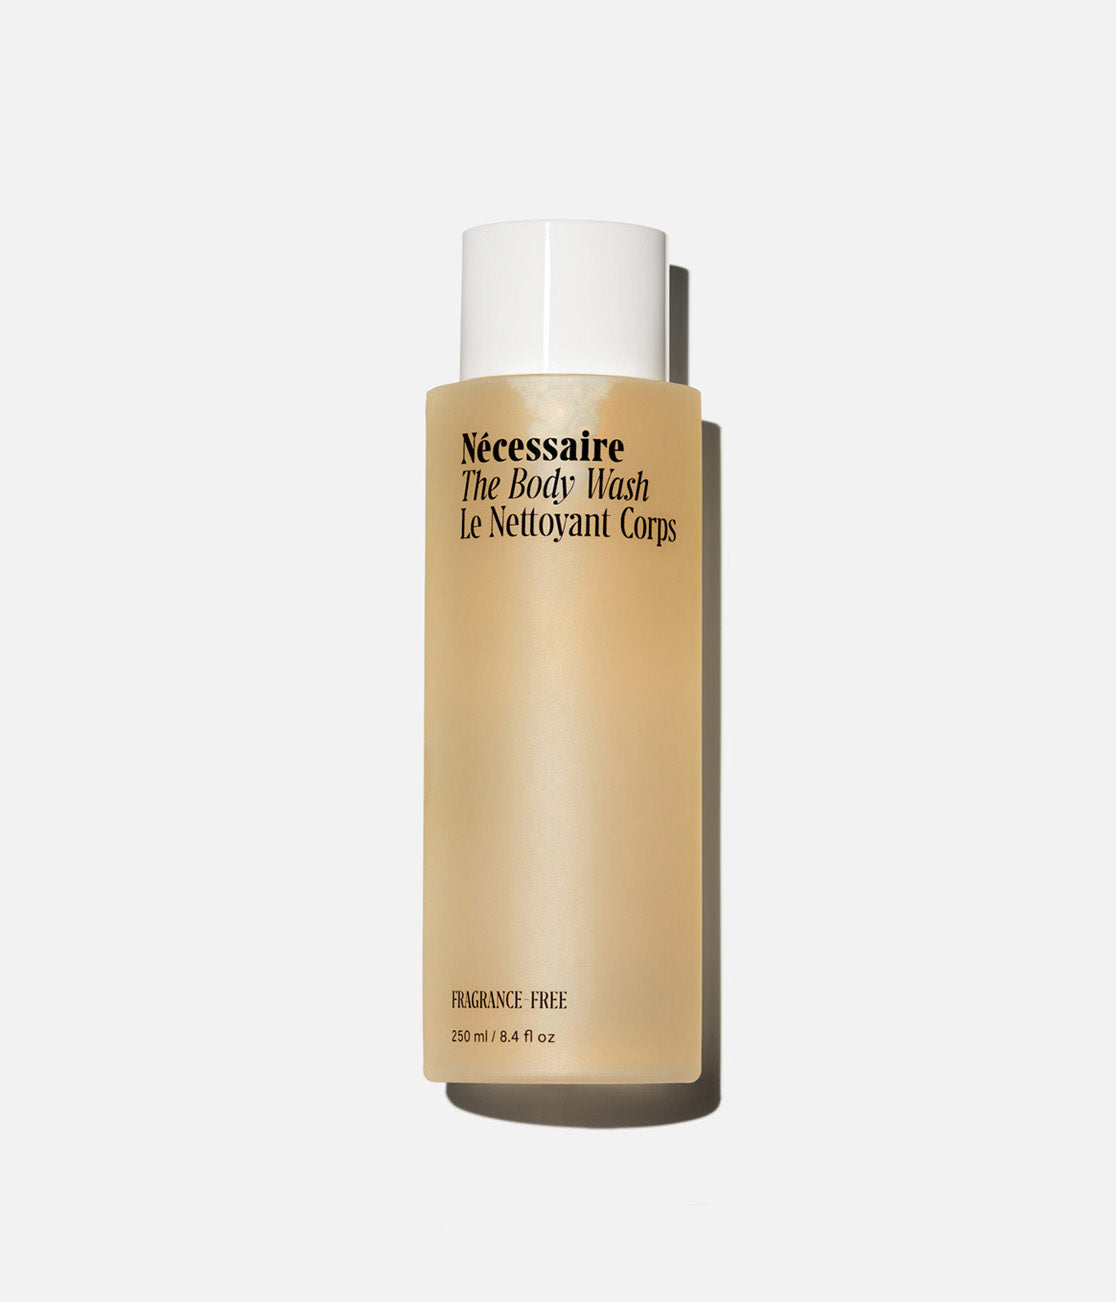 Nécessaire The Body Wash (Fragrance Free). Worldwide Free Shipping - Singapore, Malaysia, Brunei, Philippines, Indonesia, India, Australia, Hong Kong, USA, UAE, Europe!